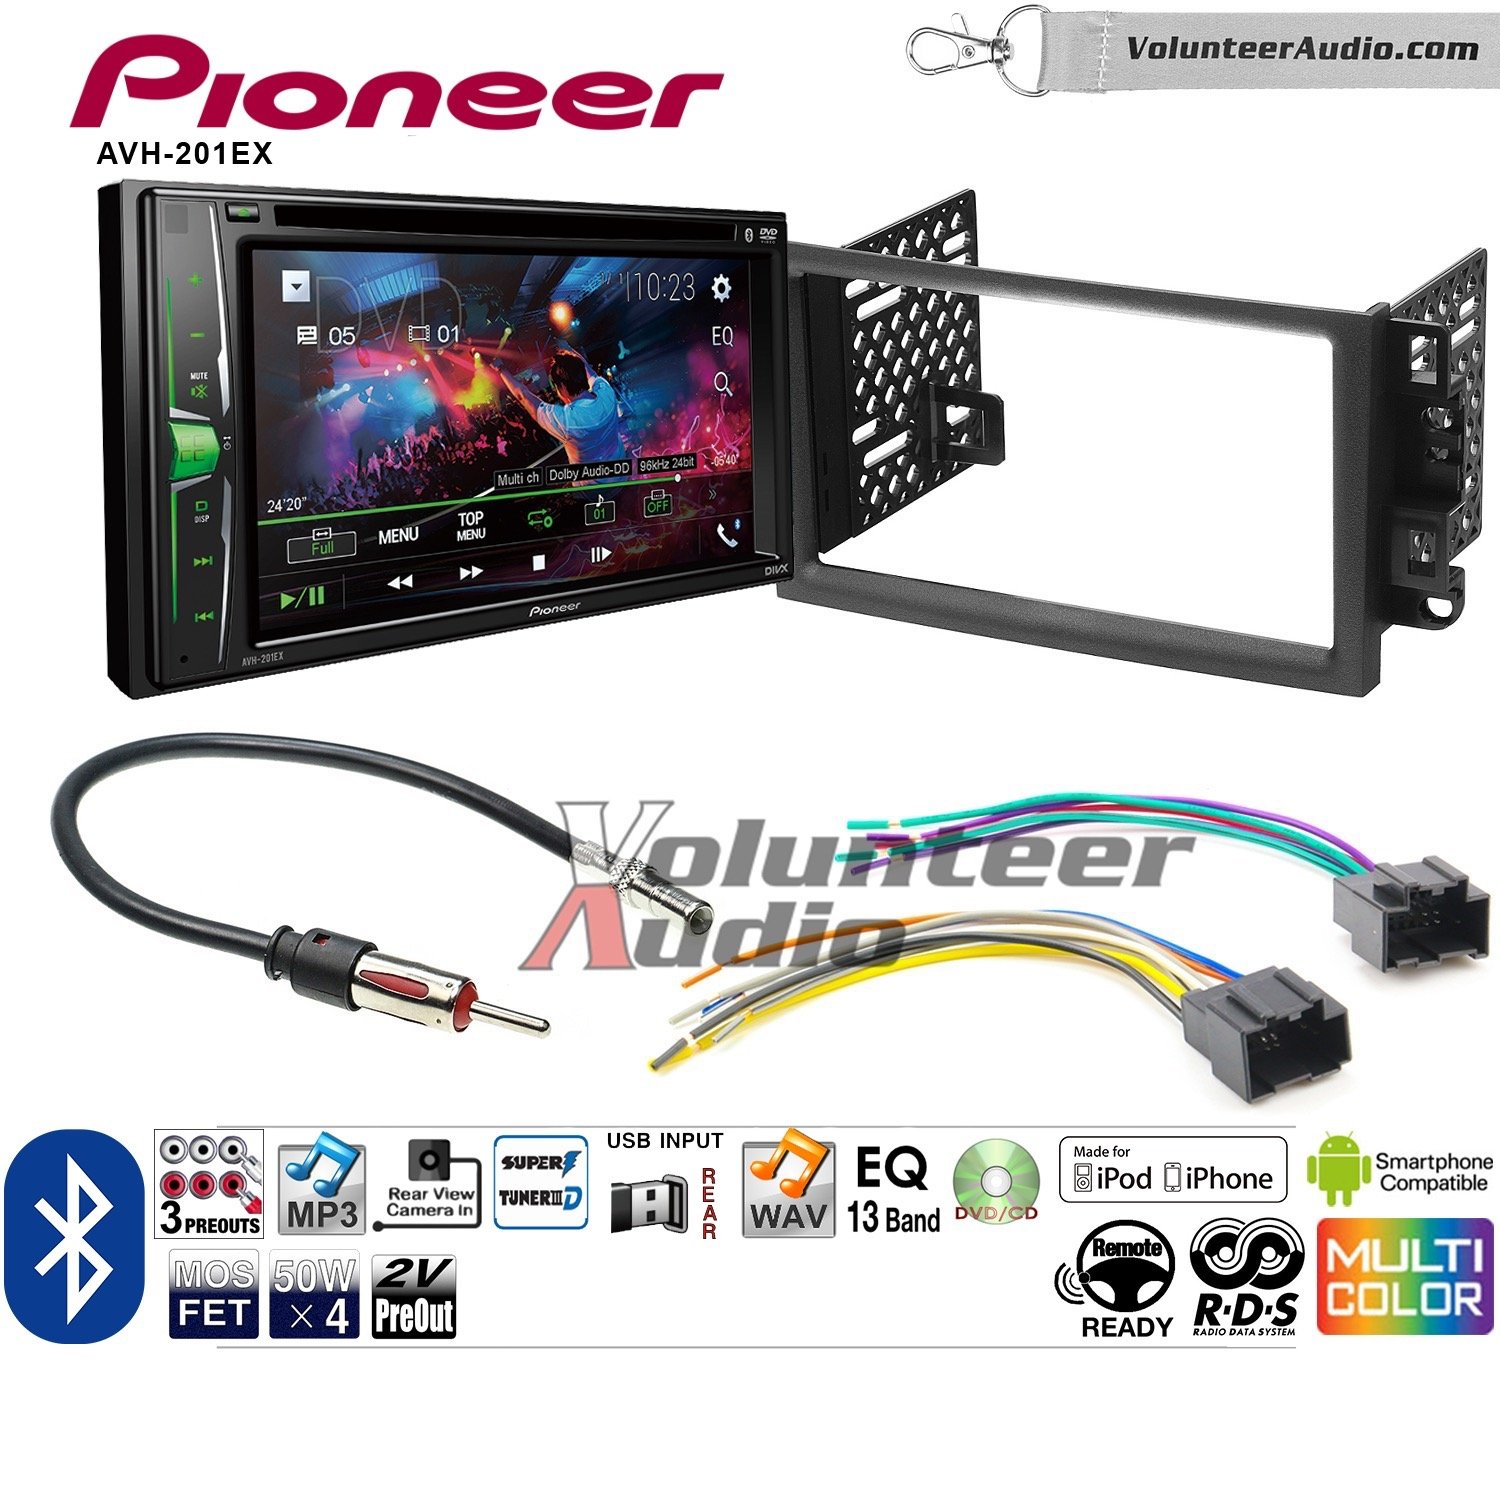 Volunteer Audio Pioneer AVH-201EX Double Din Radio Install Kit with CD Player Bluetooth USB/AUX Fits 2003-2006 Chevrolet Avalanche, Chevrolet Blazer